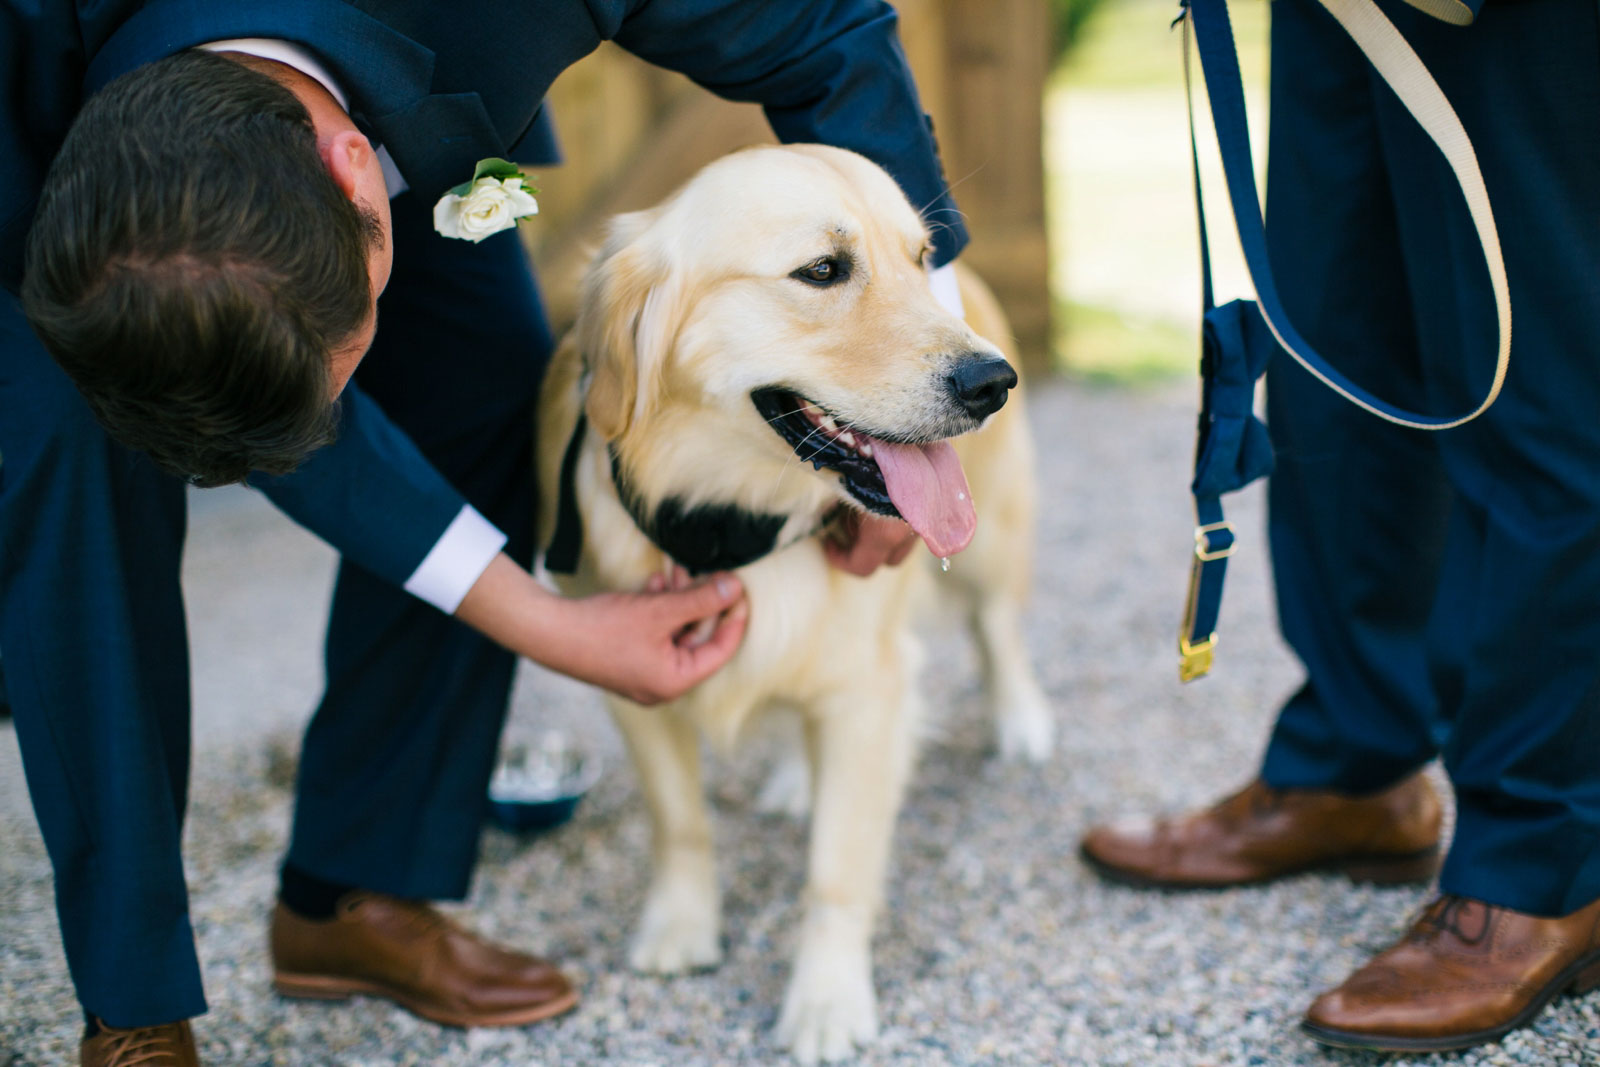 groom putting leash on golden retriever to walk down the aisle at the wedding ceremony.